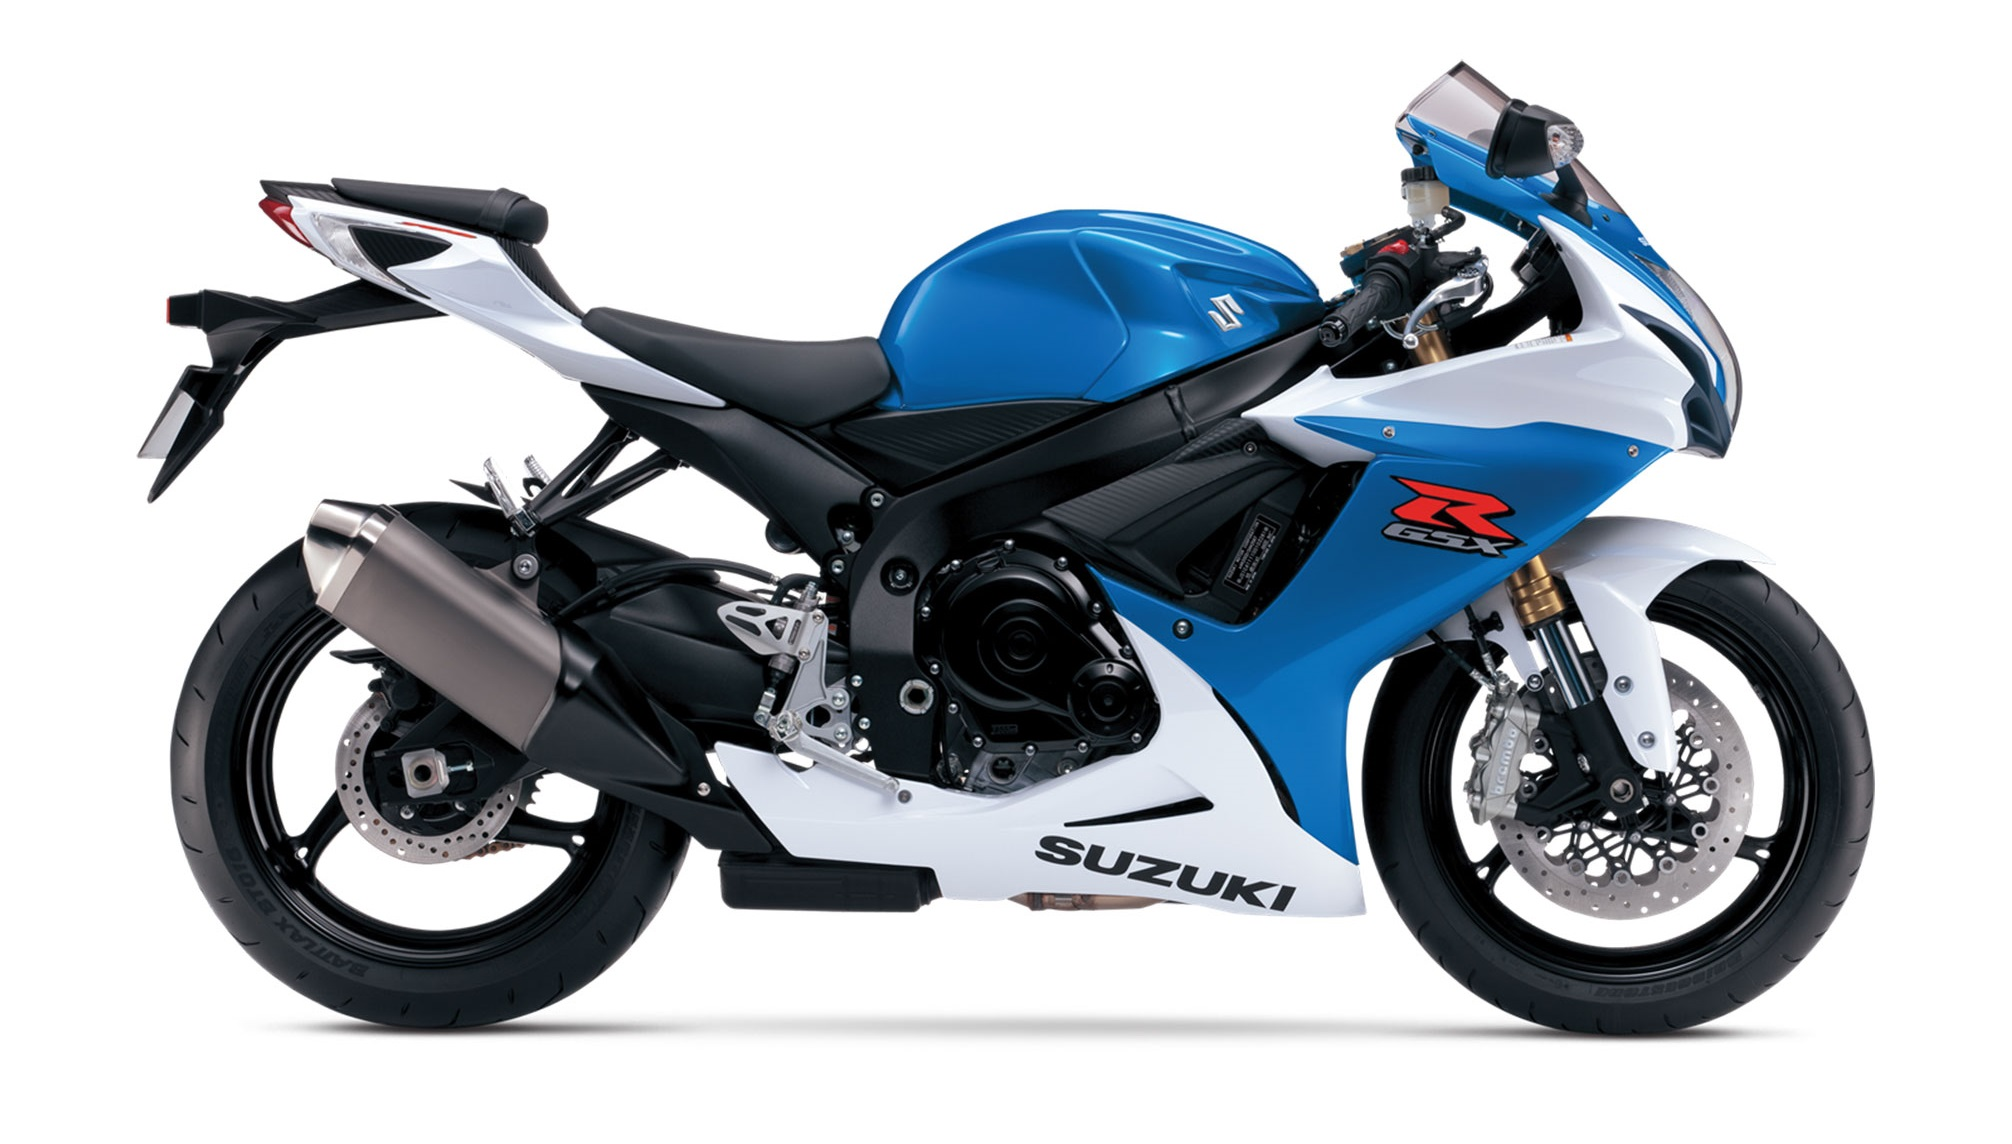 suzuki gsx r 750 fiche technique avis et prix la poign e dans l 39 angle. Black Bedroom Furniture Sets. Home Design Ideas